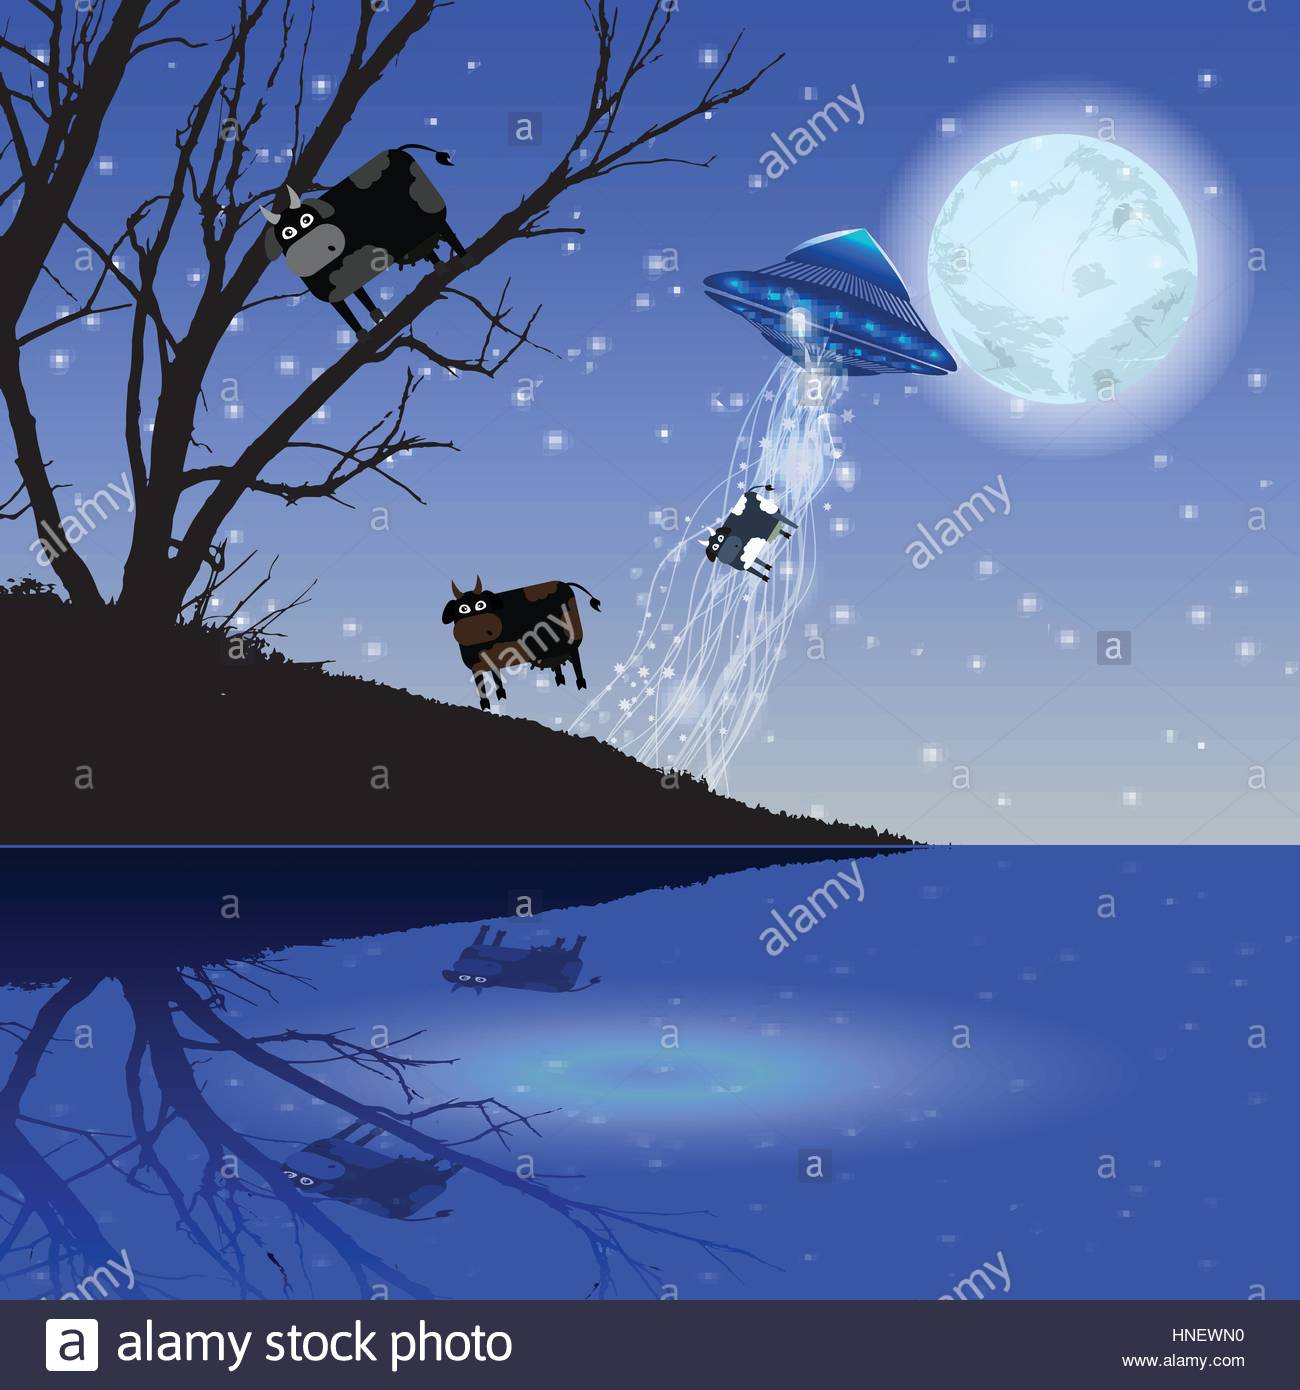 Abduction UFO flying cow Illustration Use wallpaper for the 1300x1390